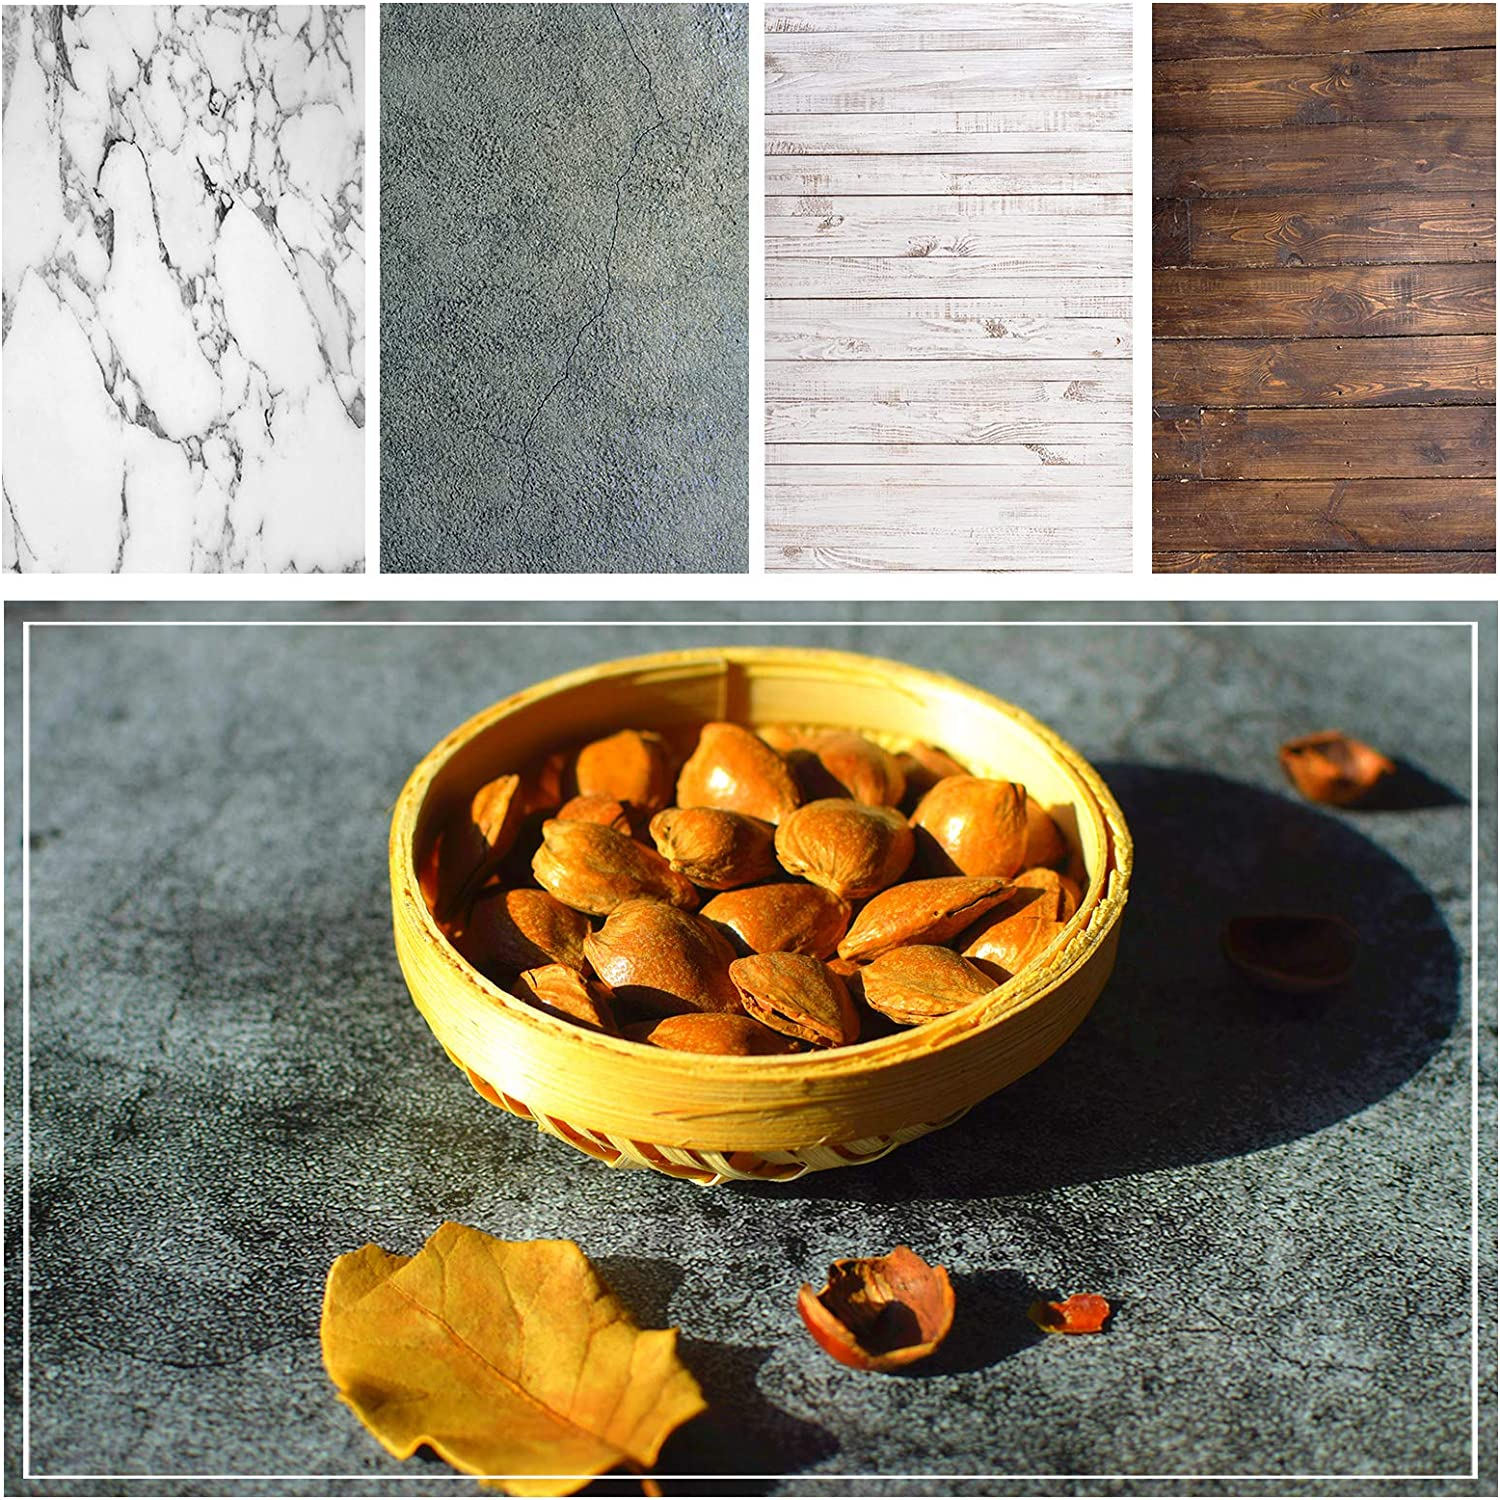 shengzkc Marble Wood Backdrop Photography Paper 4 Pack Kit 21x33Inch/53x85cm Flat Lay Double Sided Rustic Photo Background Rolls for Food Product Jewelry Tabletop Props Pictures